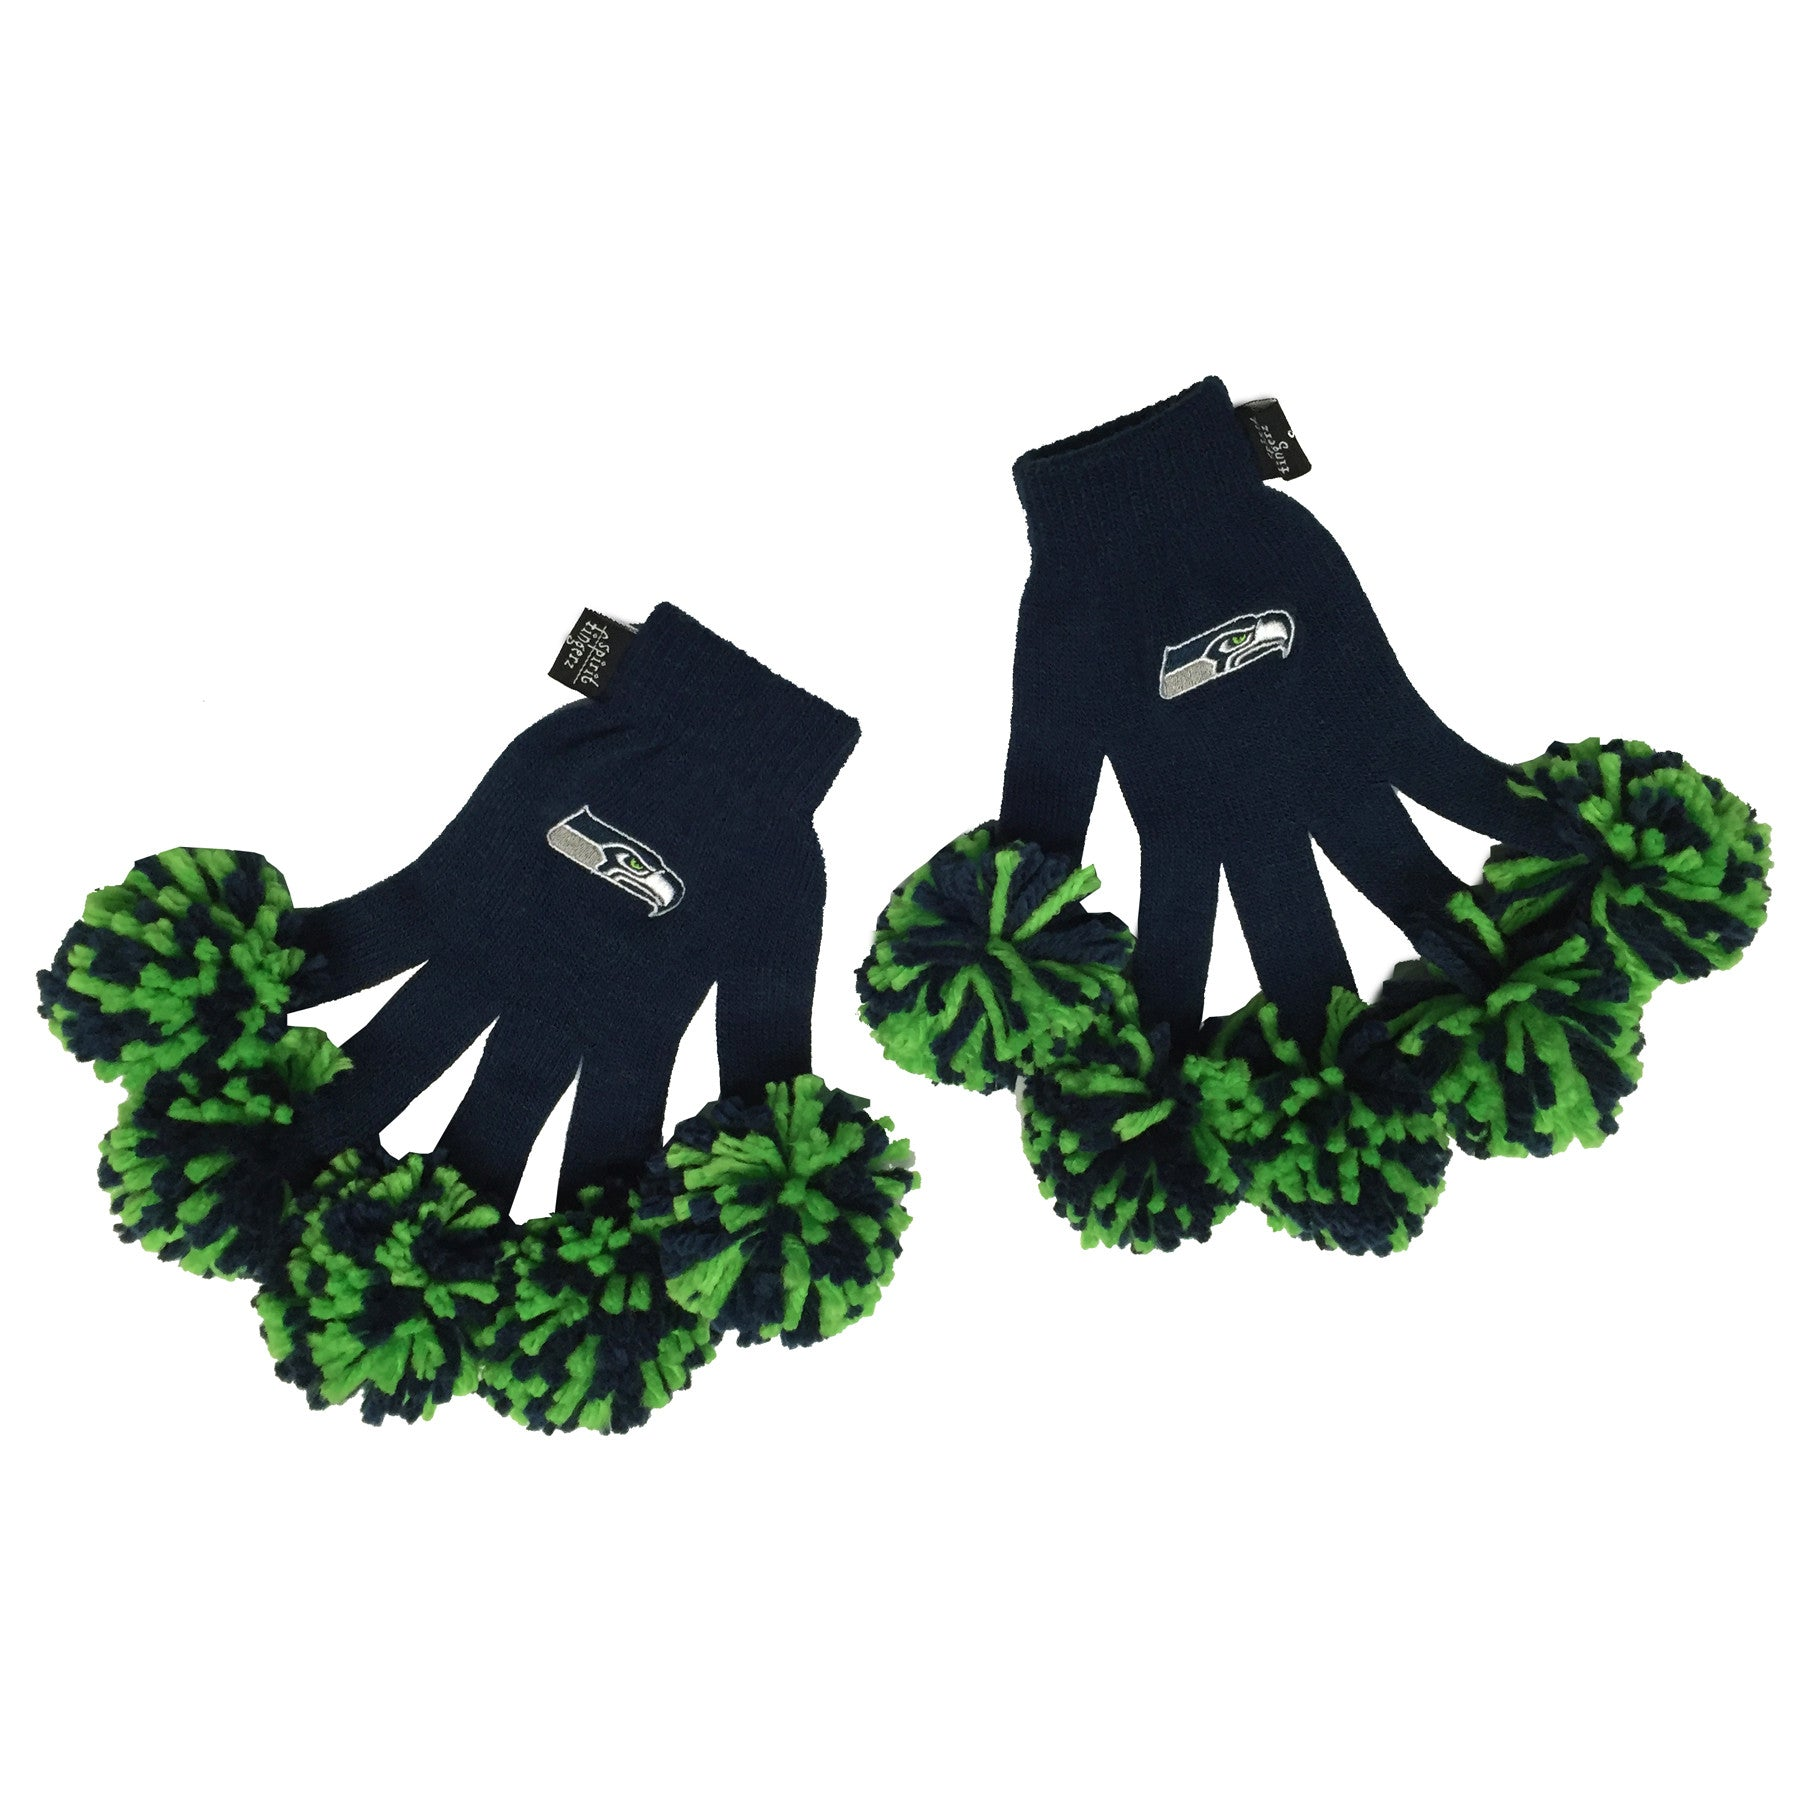 Seattle Seahawks NFL Spirit Fingerz Cheerleading Pom-Pom Gloves